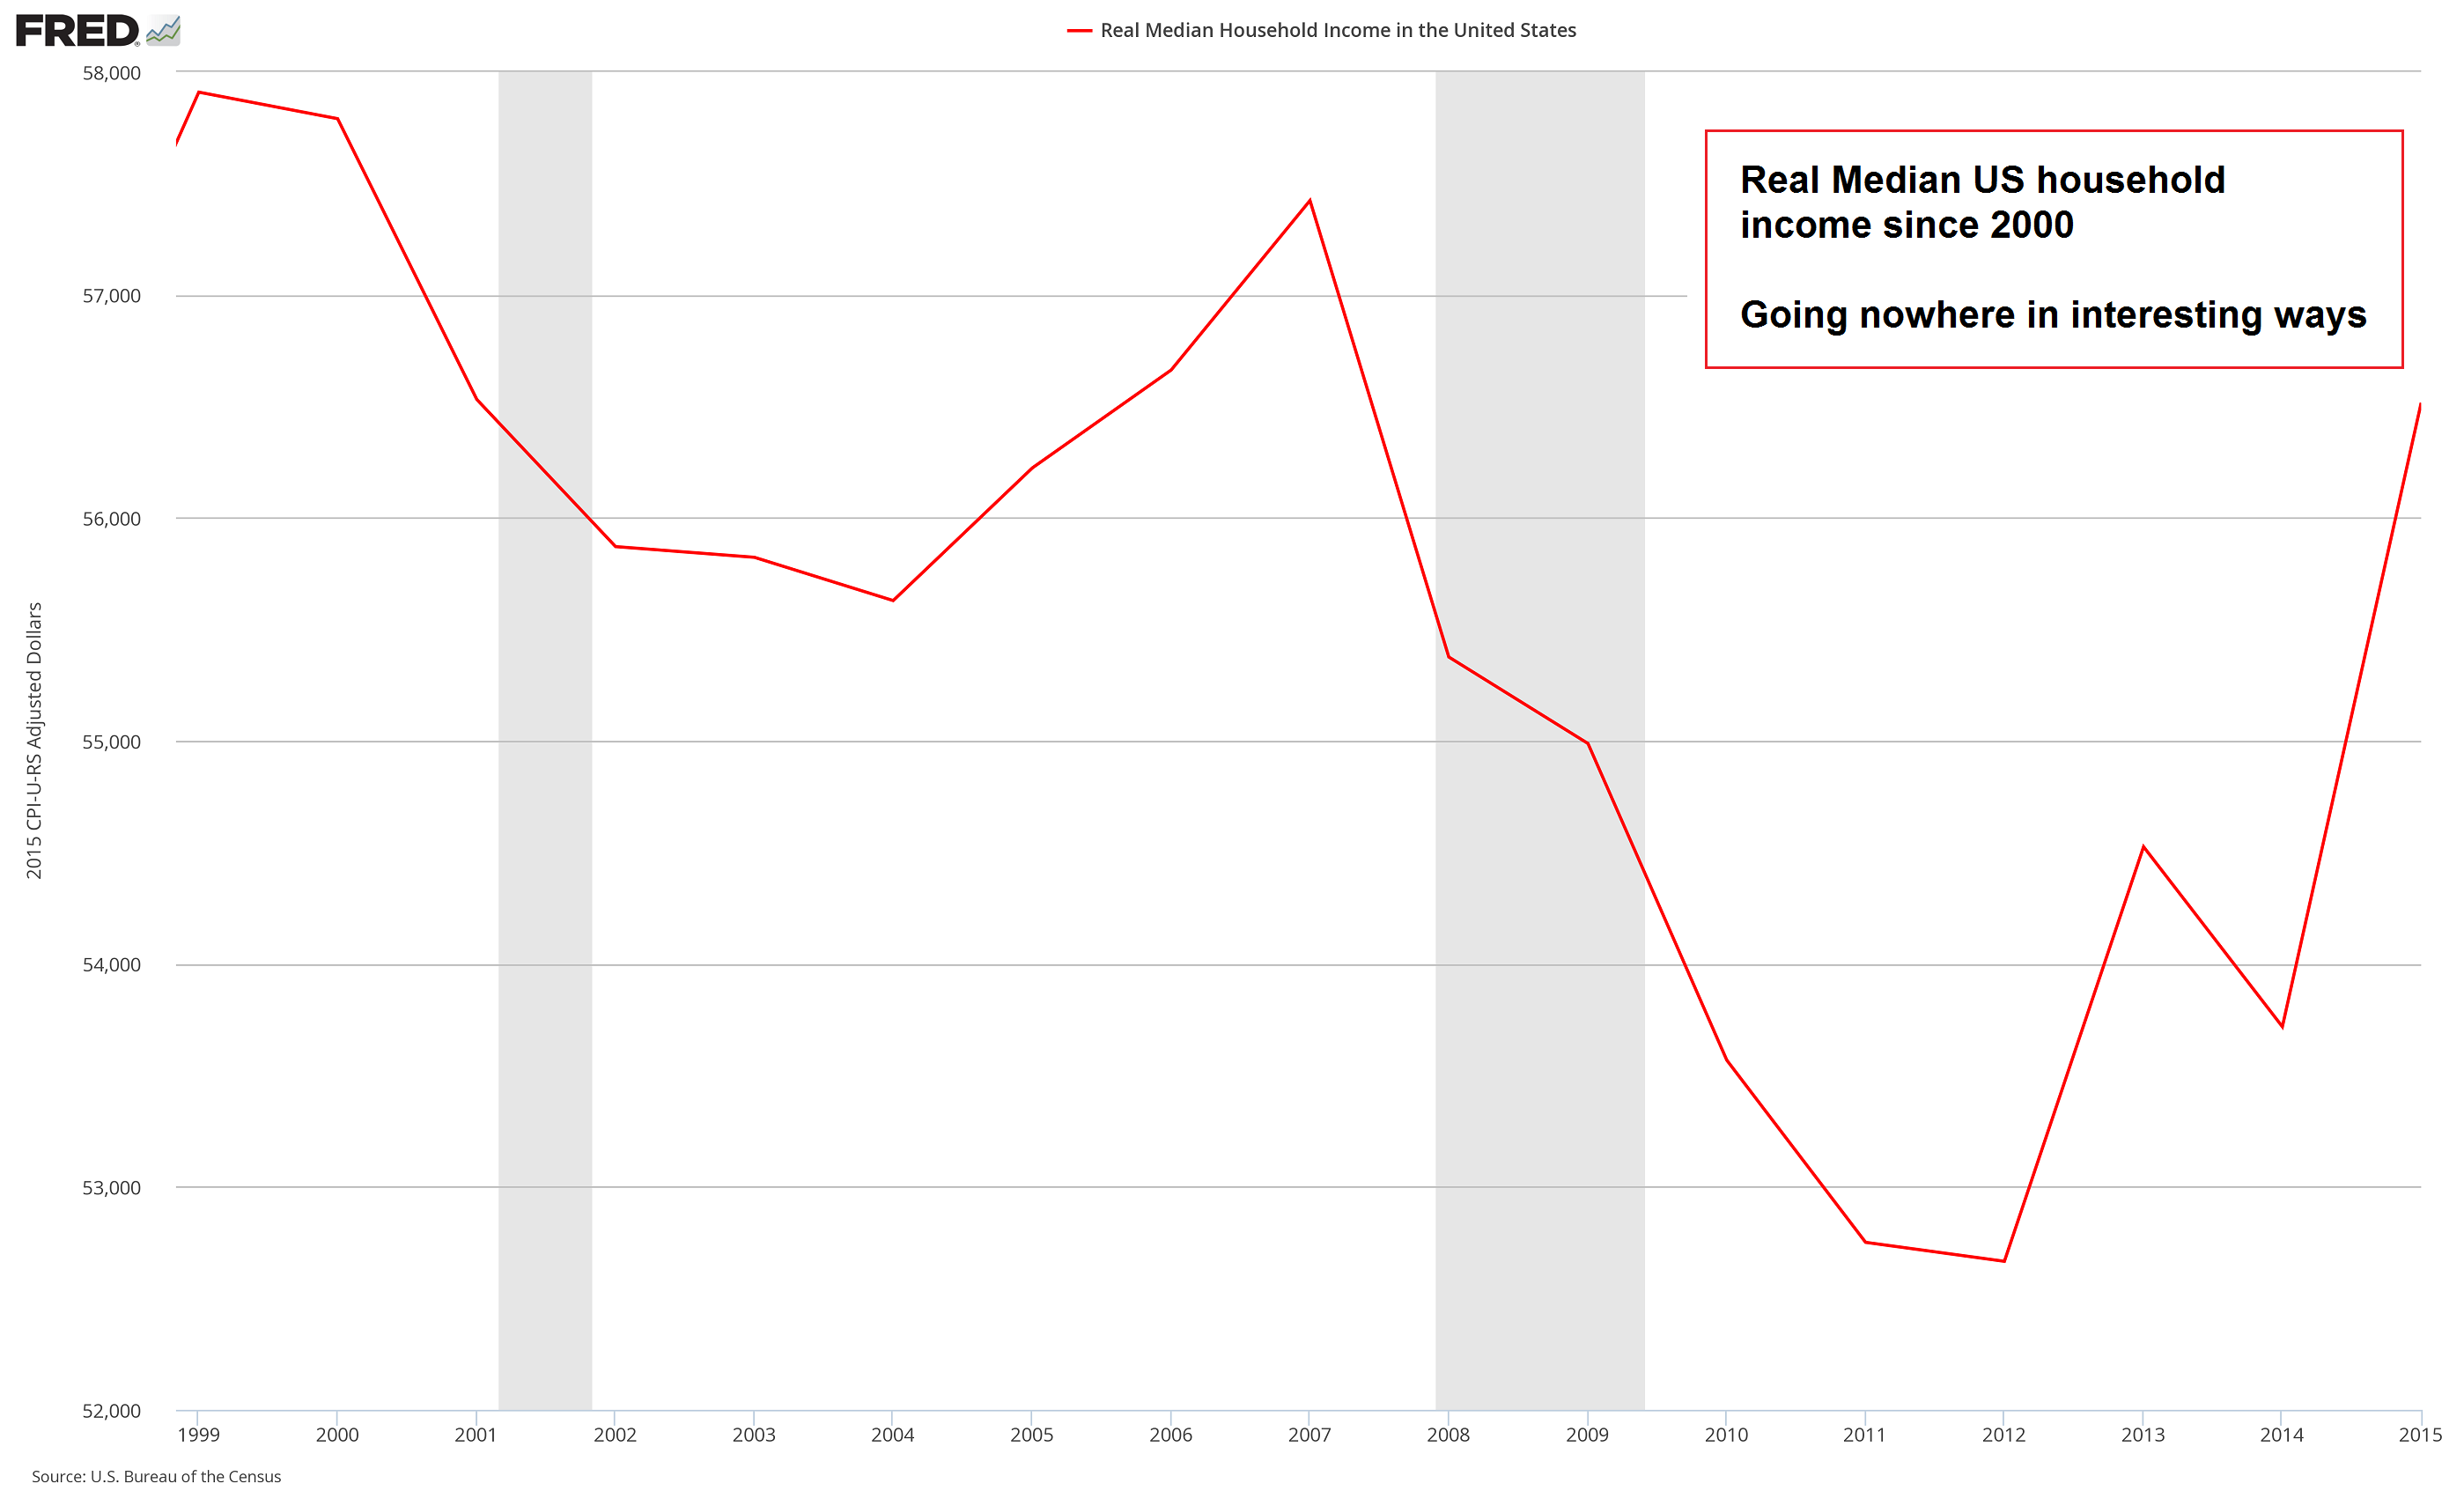 Real Median Household Income 1999-2015